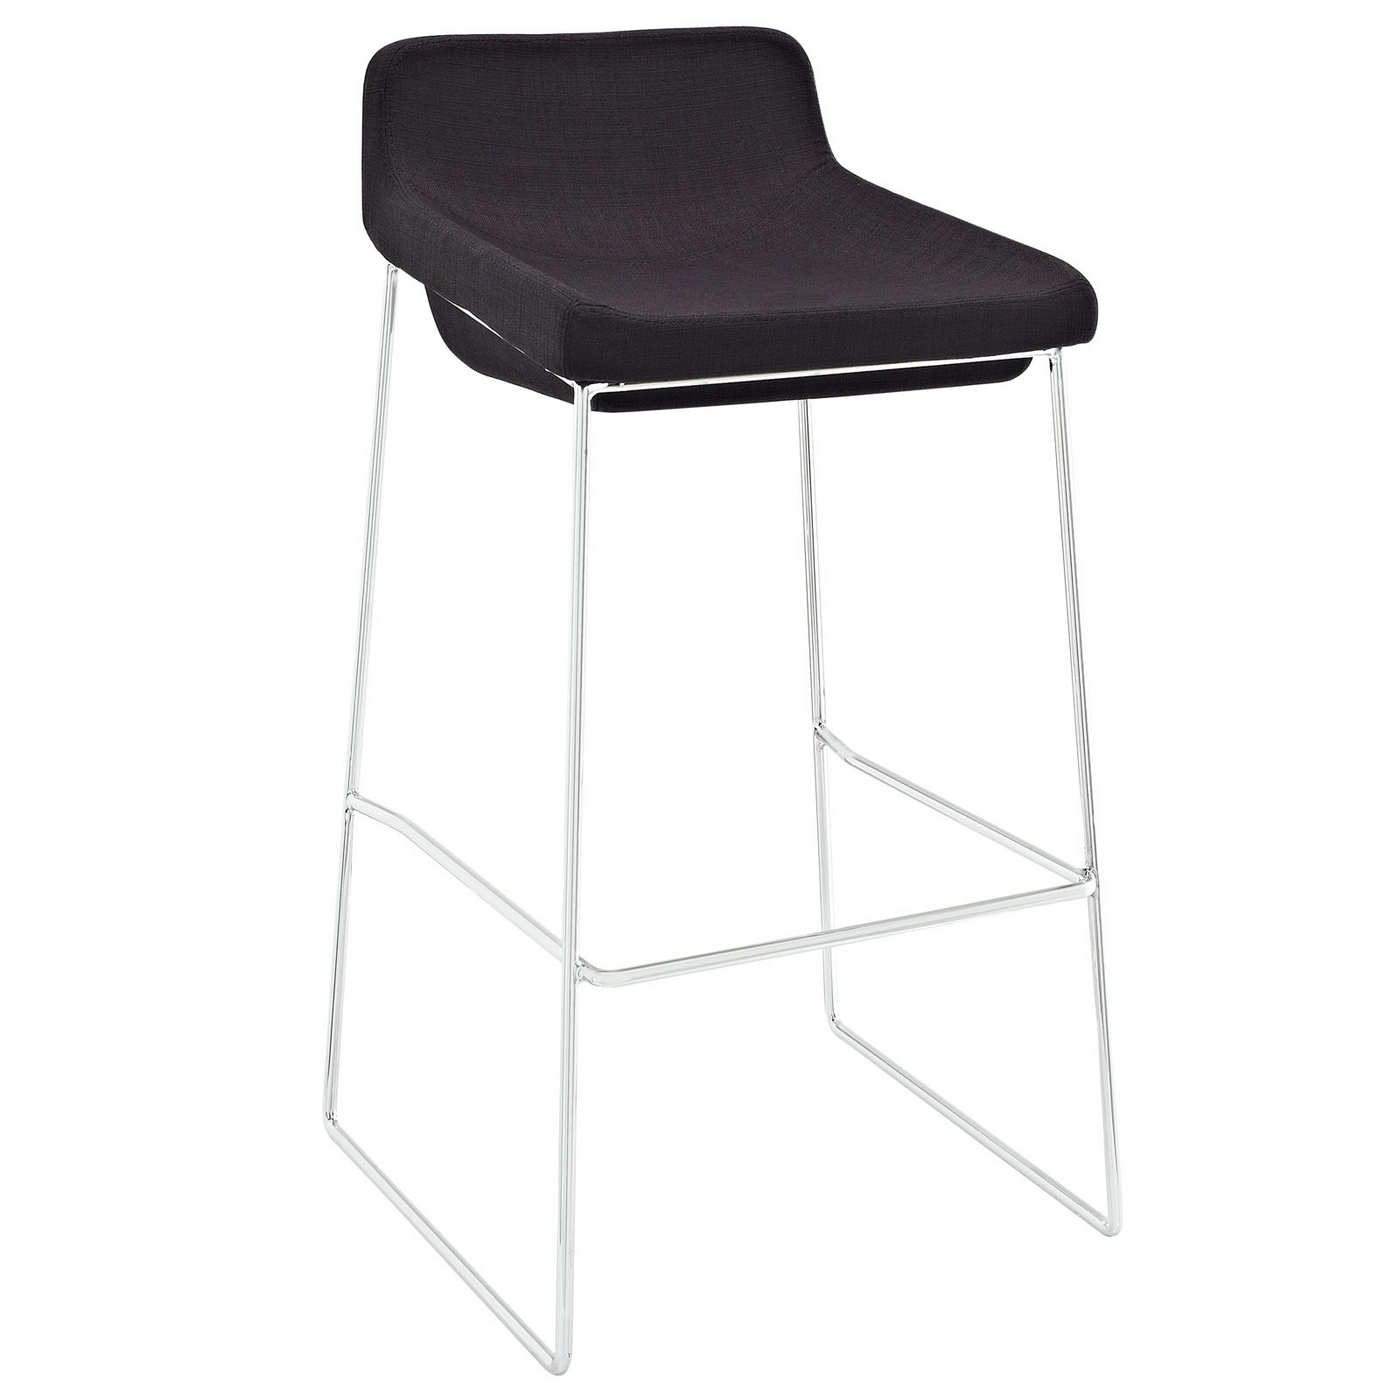 Garner Contemporary Upholstered Bar Stool With Aluminum